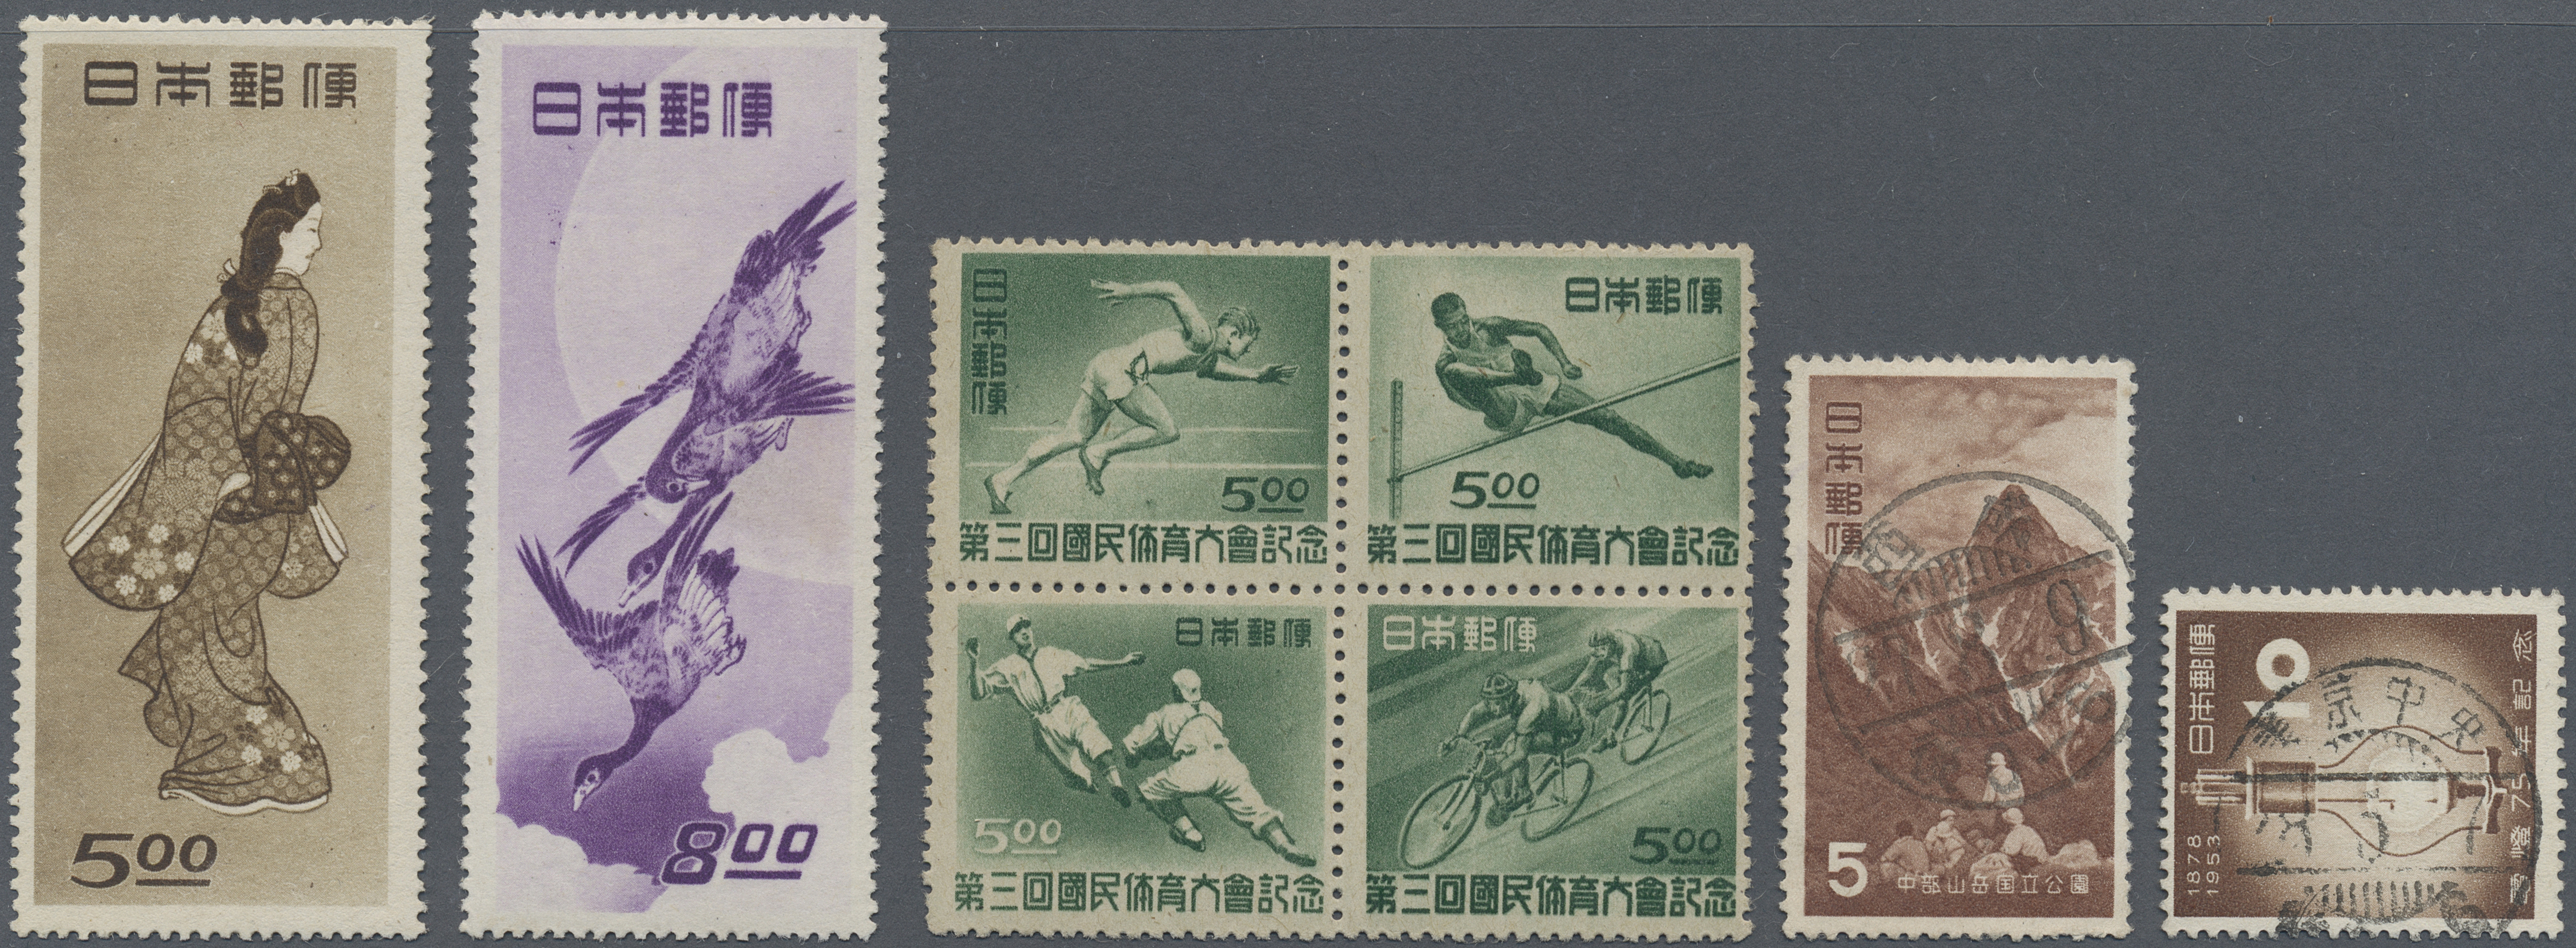 Lot 34529 - Japan  -  Auktionshaus Christoph Gärtner GmbH & Co. KG Collections Germany,  Collections Supplement, Surprise boxes #39 Day 7